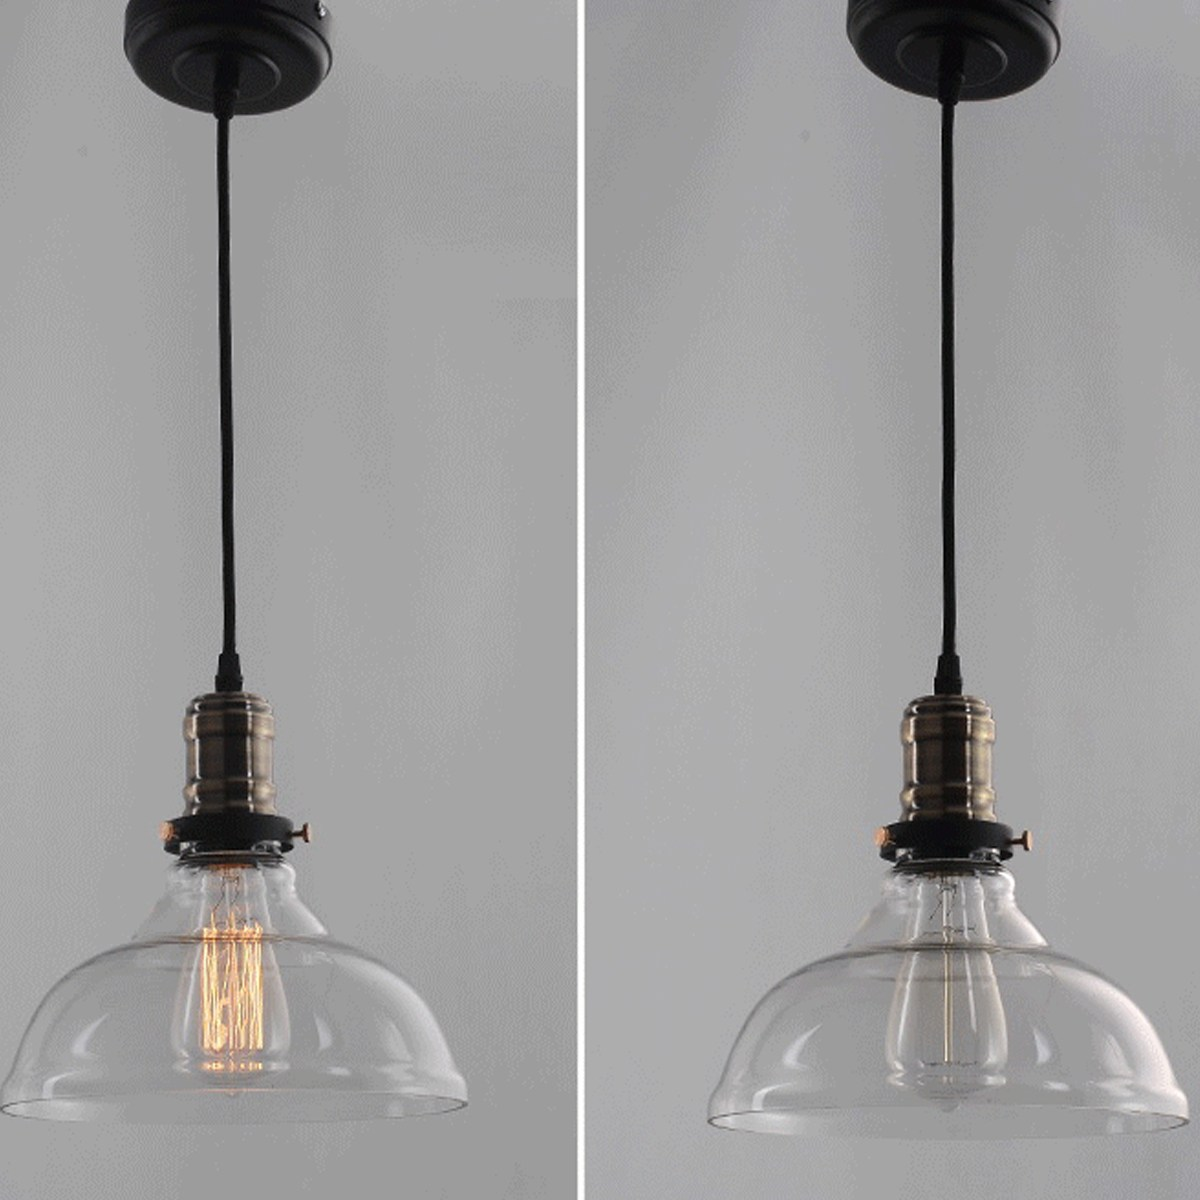 E27 40W 25cm Diameter Vintage Industrial Glass Pedant Light Lamp Windmill Chandelier Lampshade<br>